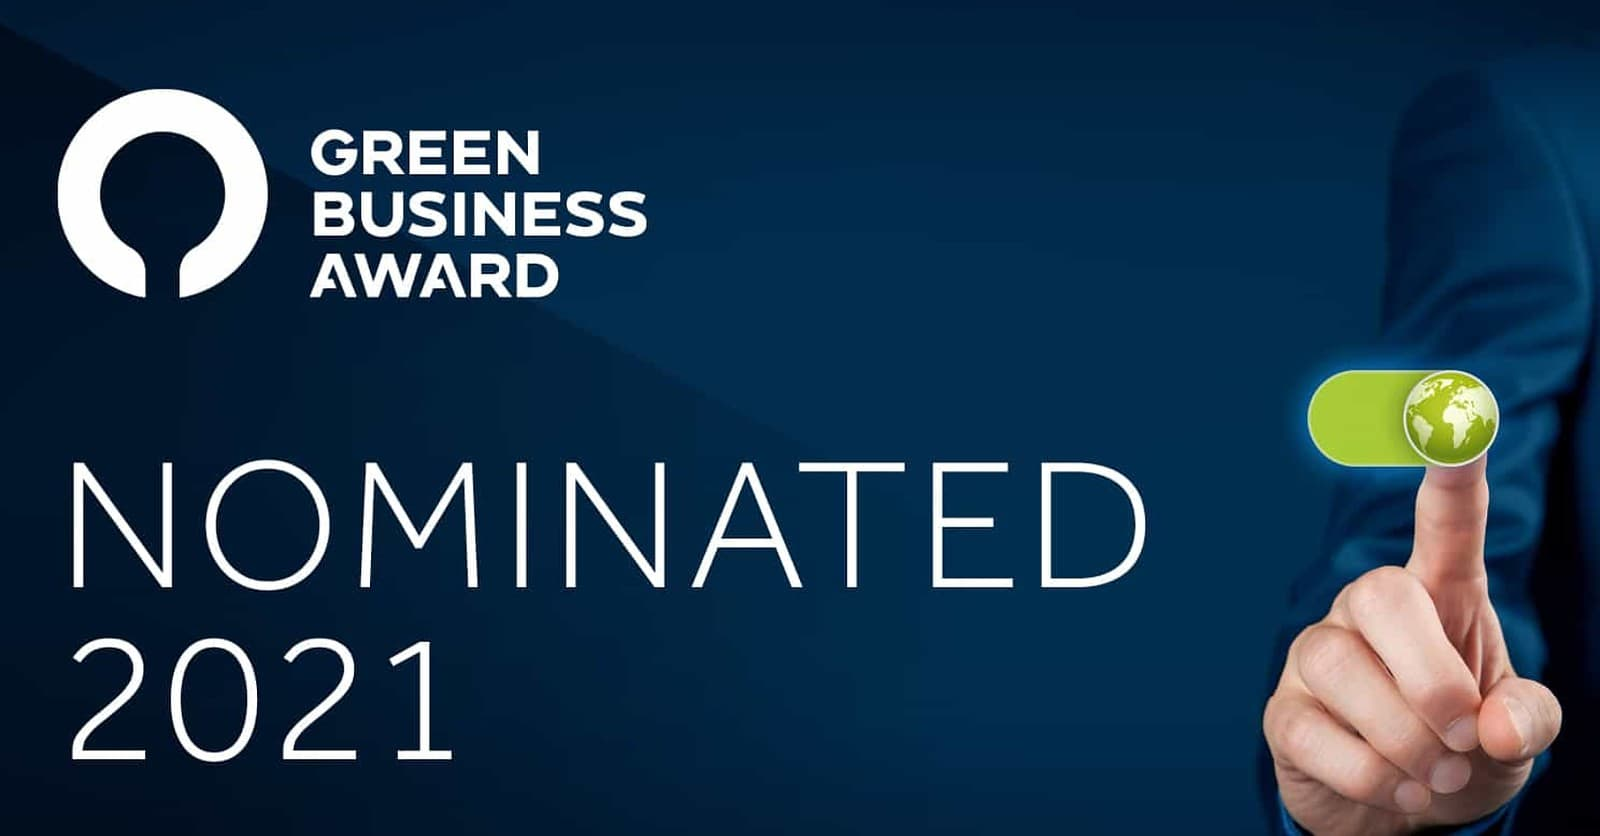 Nominated for the Green Business Award 2021